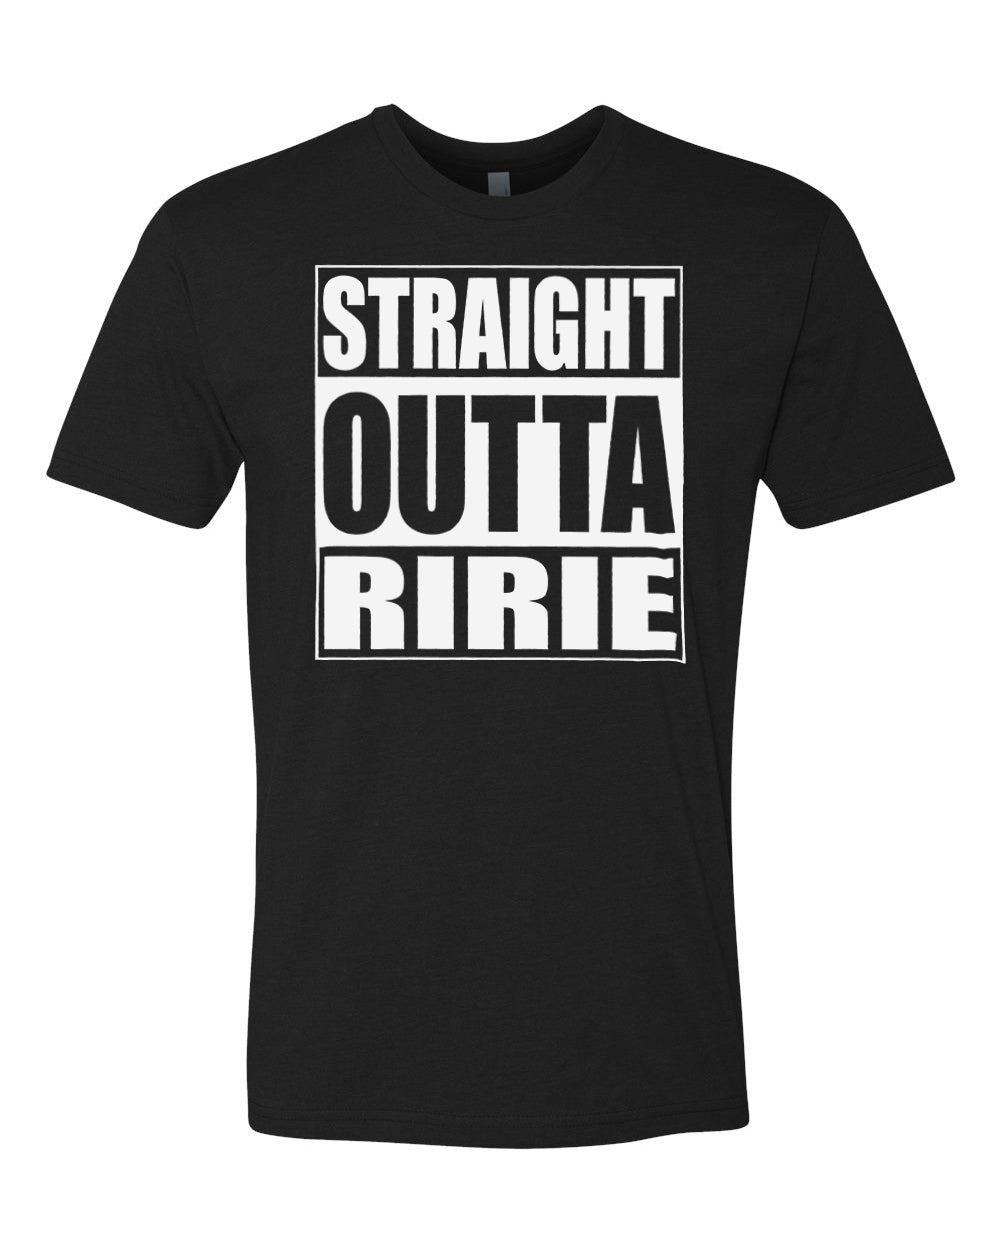 RIRIE HS – Next Level Fitted Crew Tee – Straight Outta Ririe (White/Black)